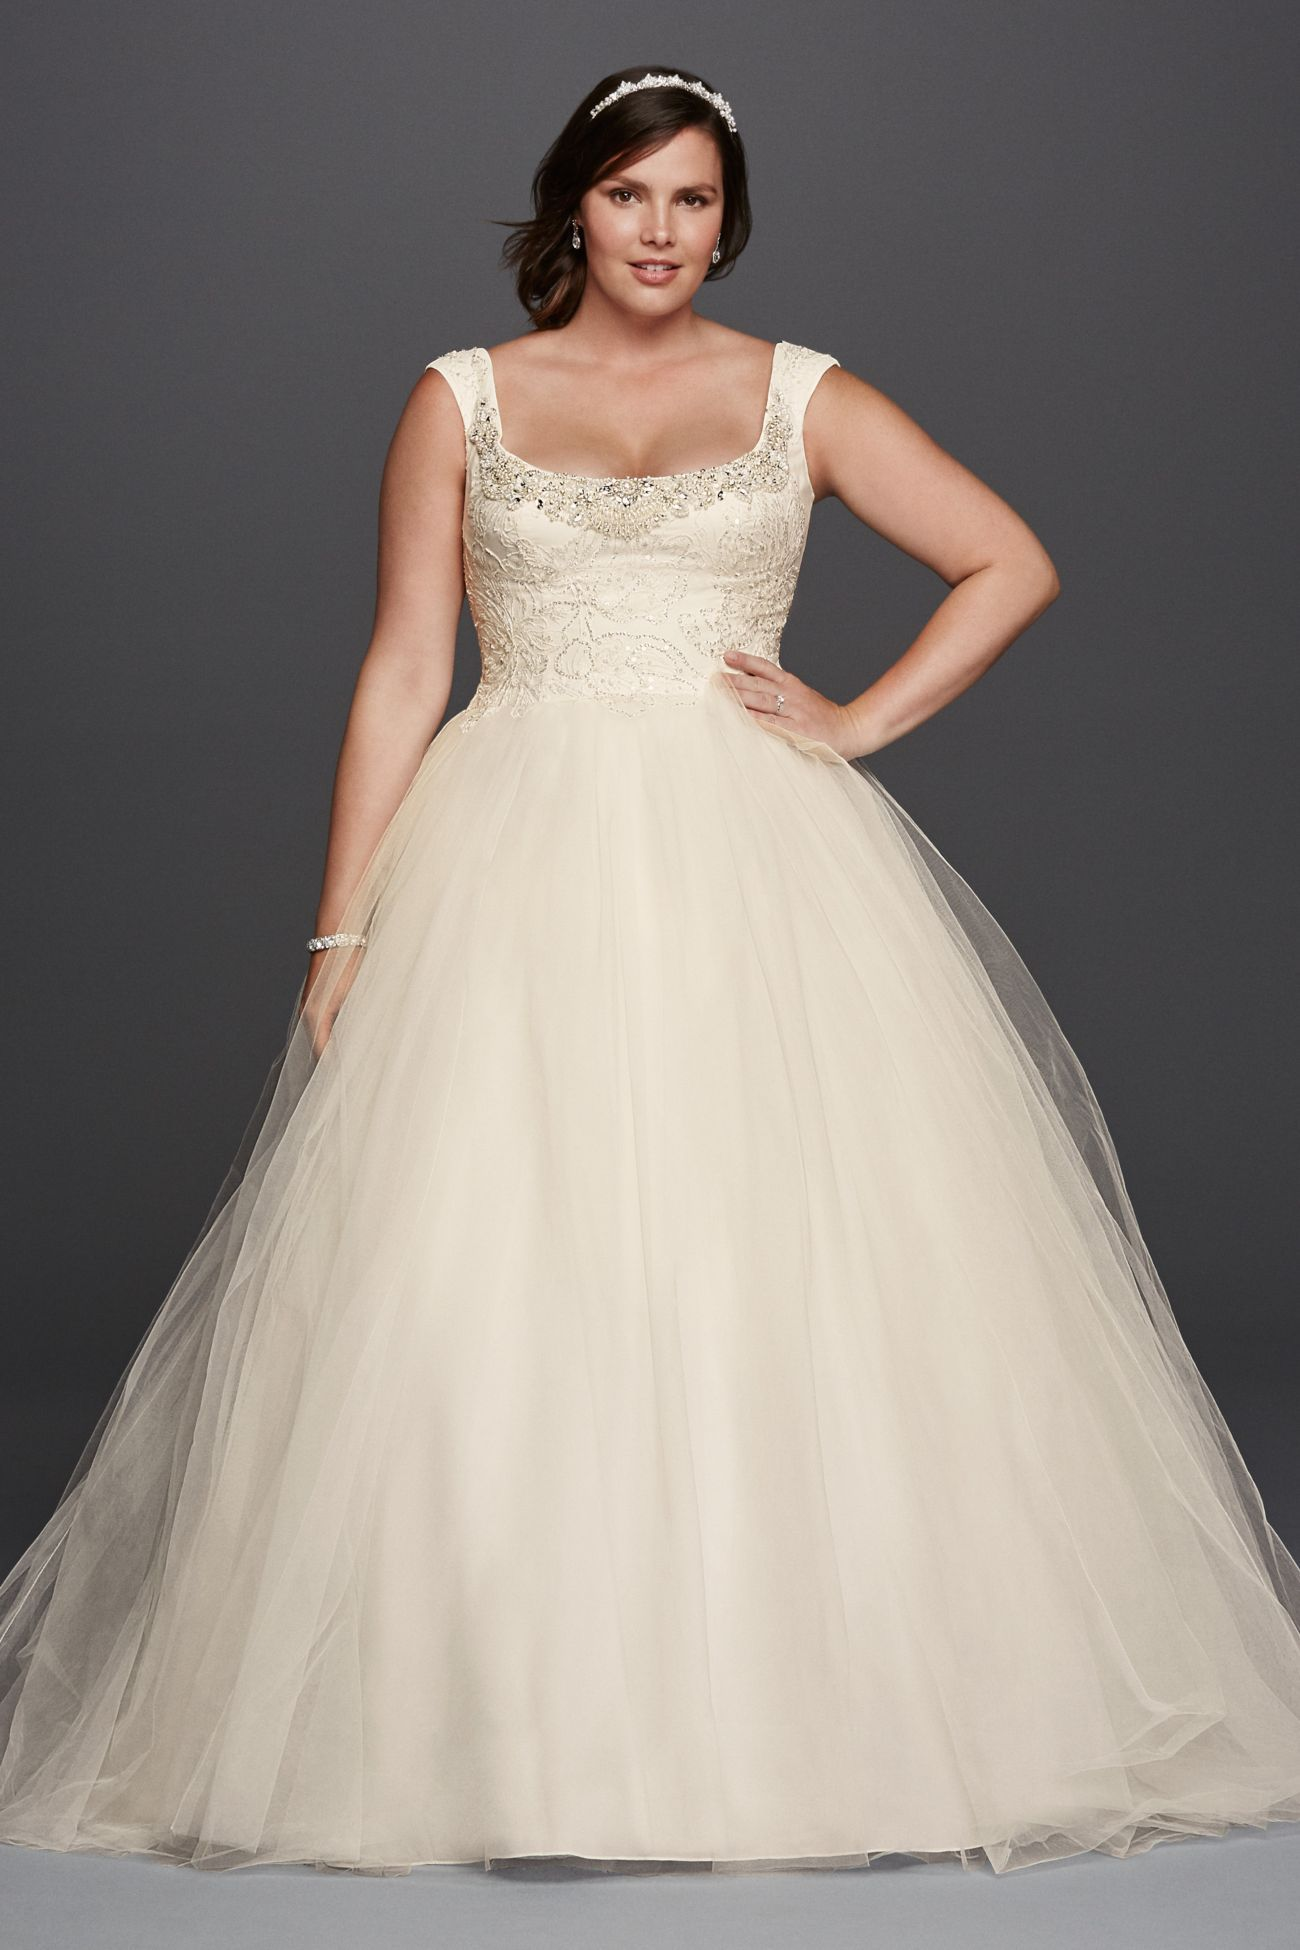 My New Favorite Www Davidsbridal Com 10539444 Davids Bridal Wedding Dresses Bridal Gowns Wedding Dresses Plus Size